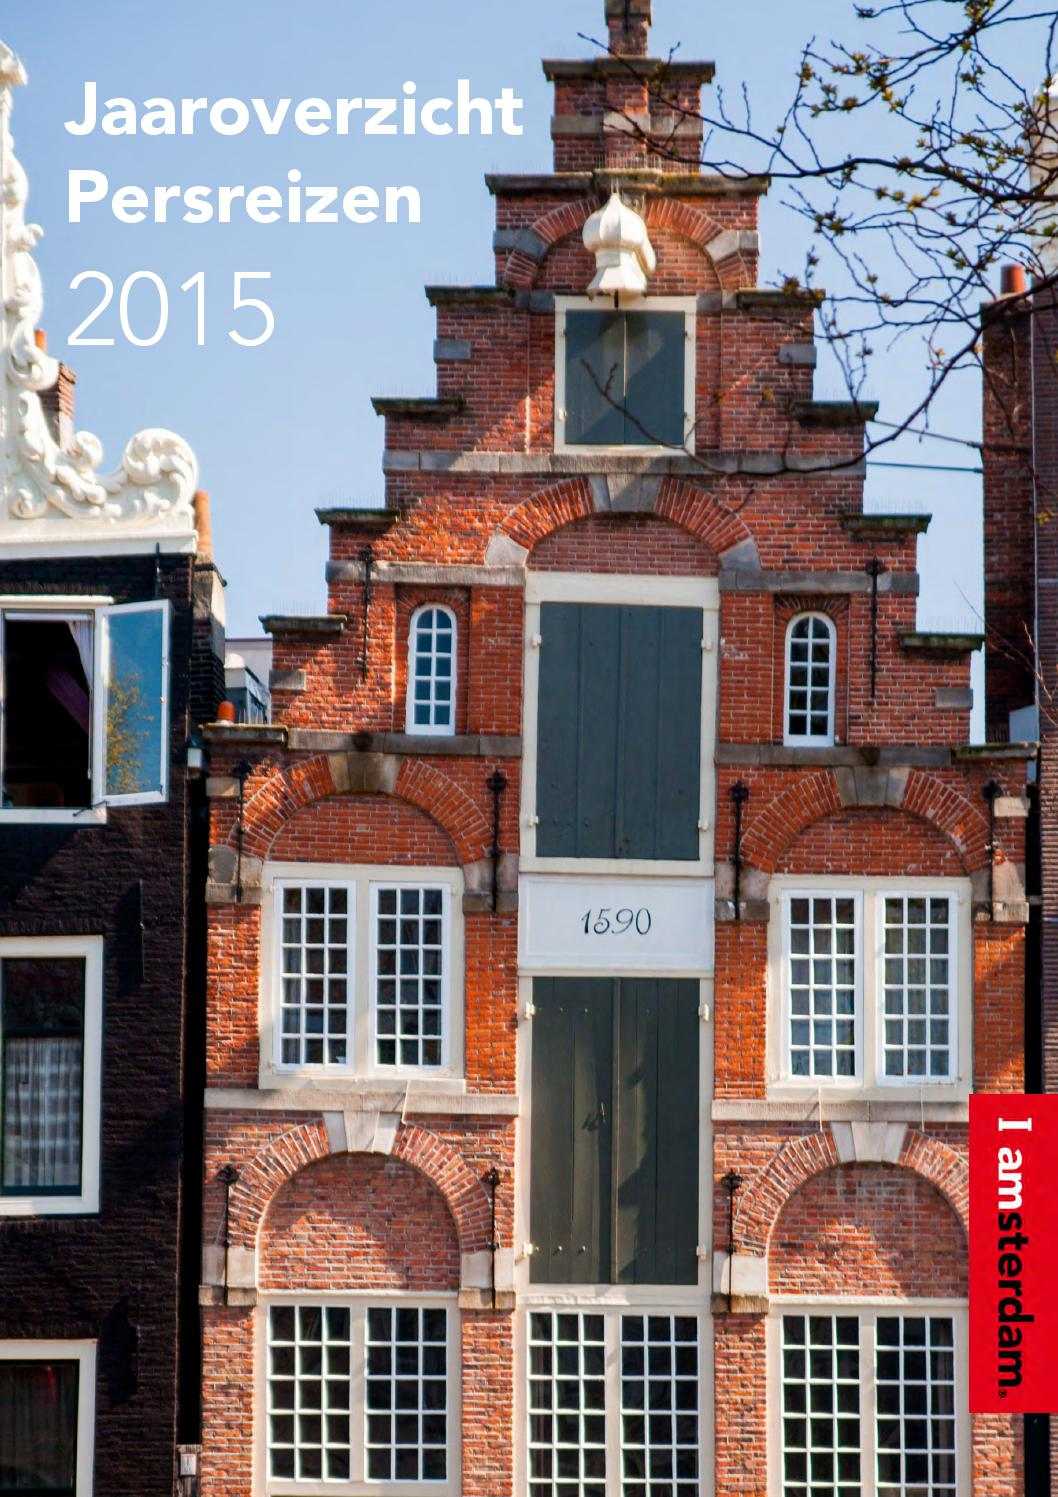 Jaaroverzicht Persreizen 2015 - Amsterdam Marketing by Amsterdam ...